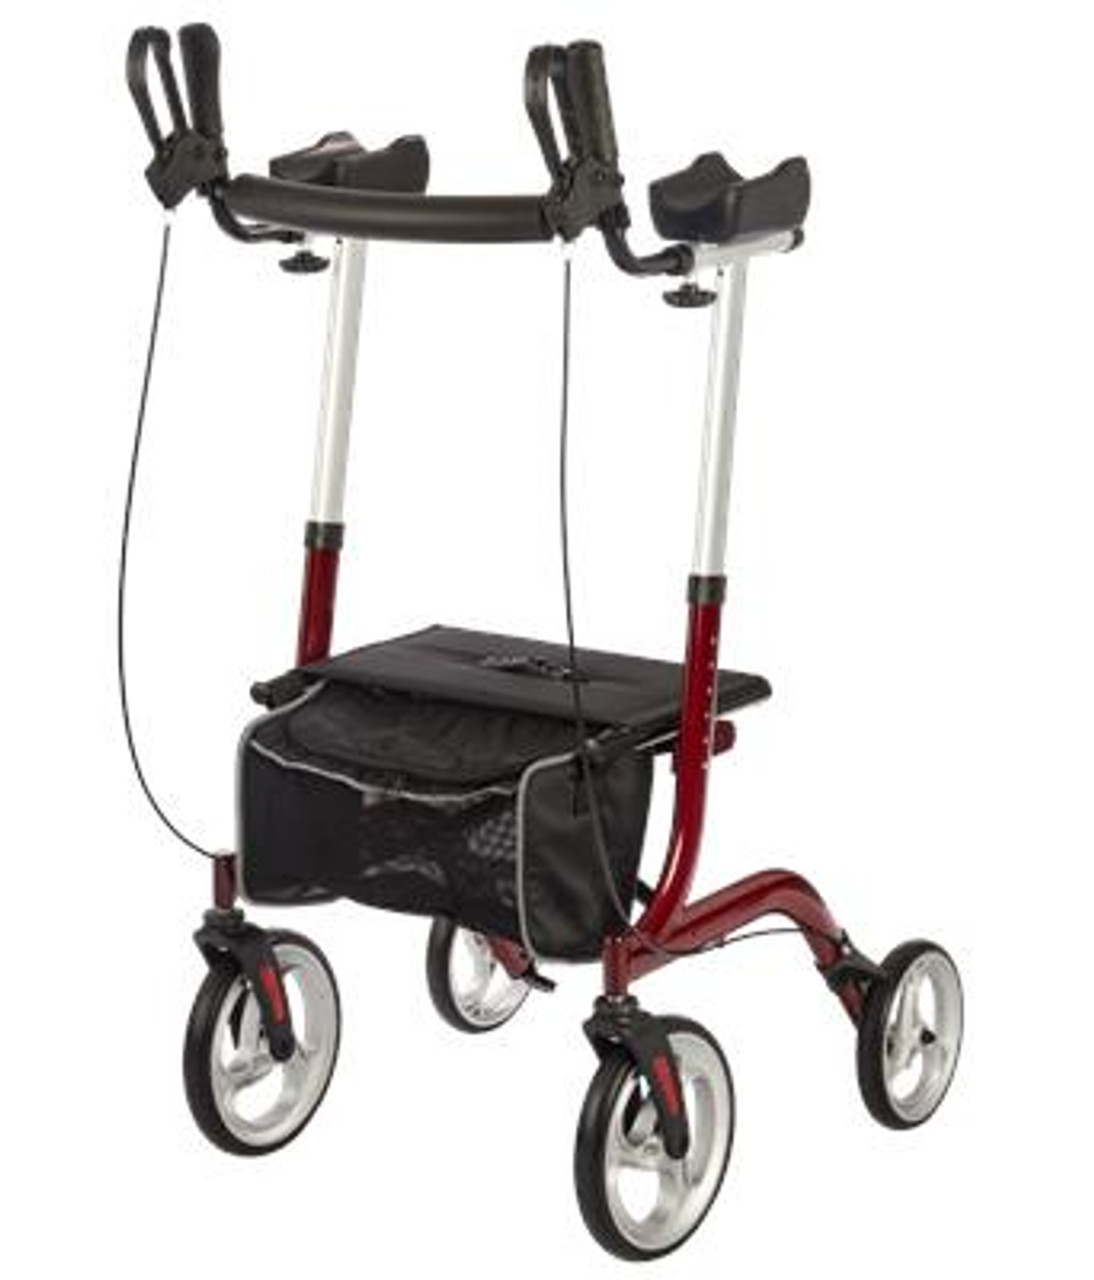 Lifestyle Venture XP - Upright Posture Euro Style Rollator